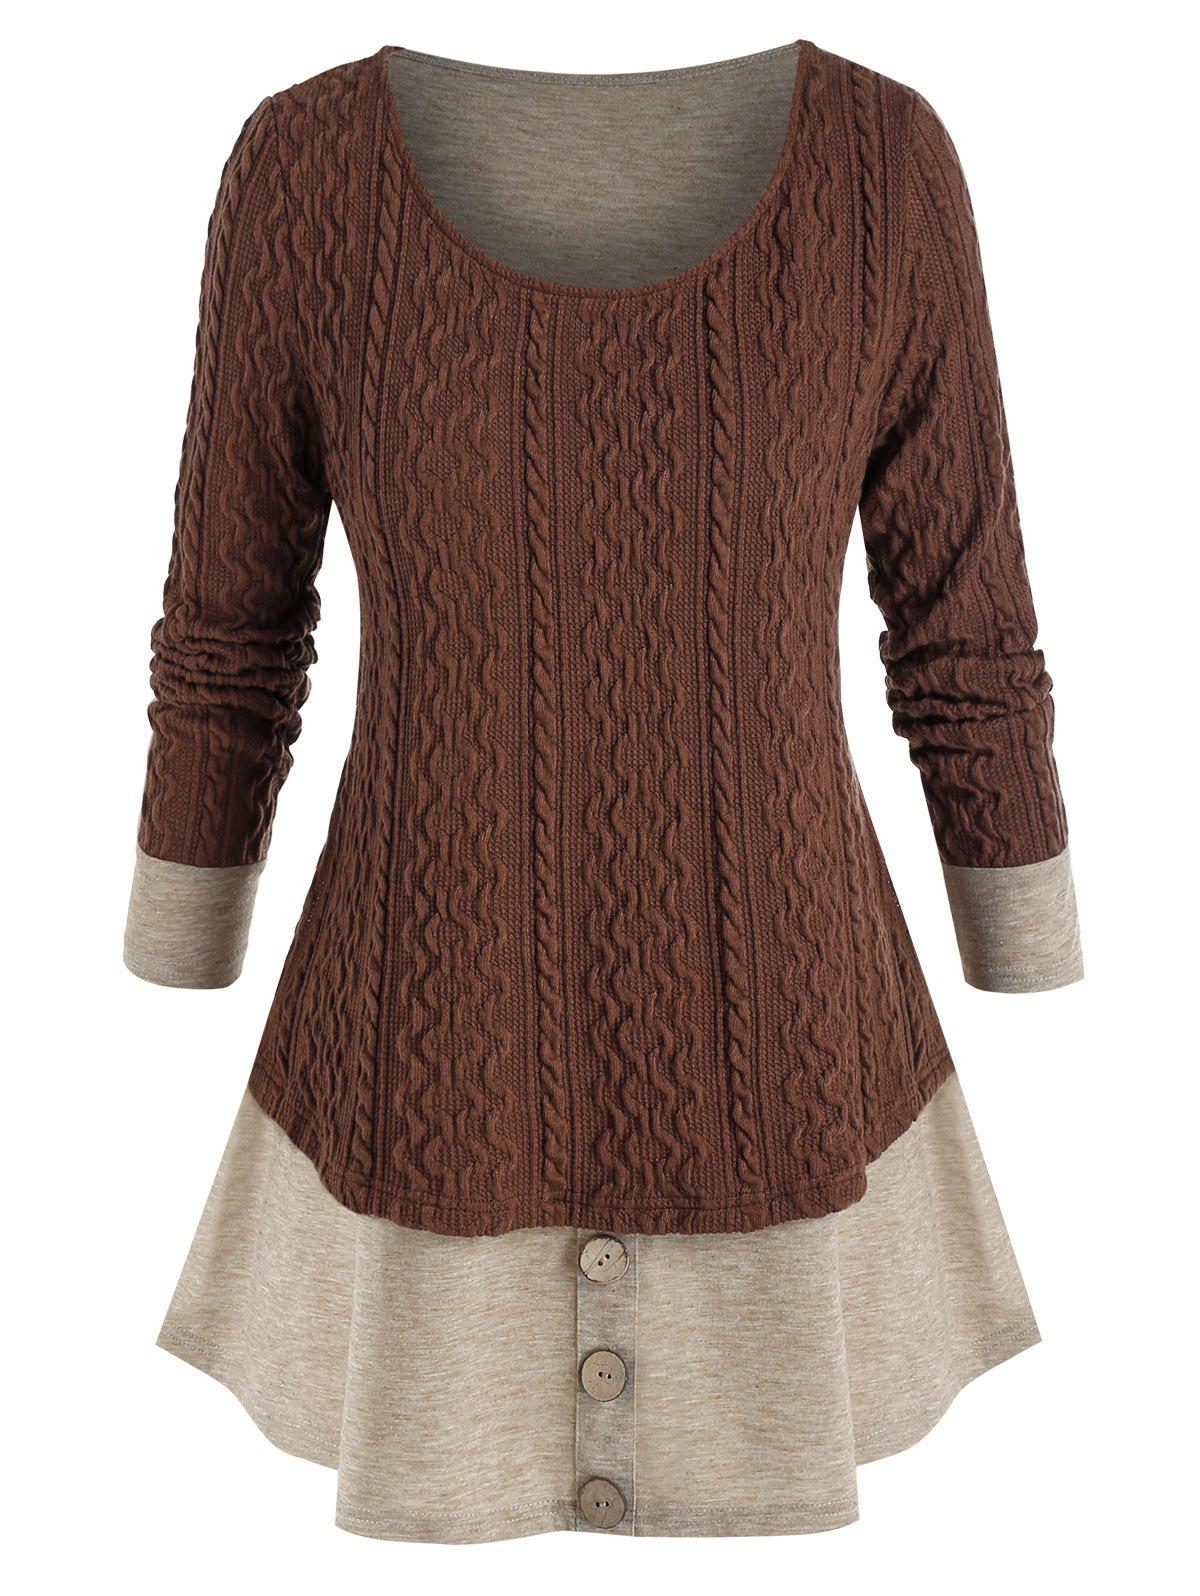 Plus Size Colorblock Knitted Mock Button Twofer T Shirt - DEEP BROWN 5X